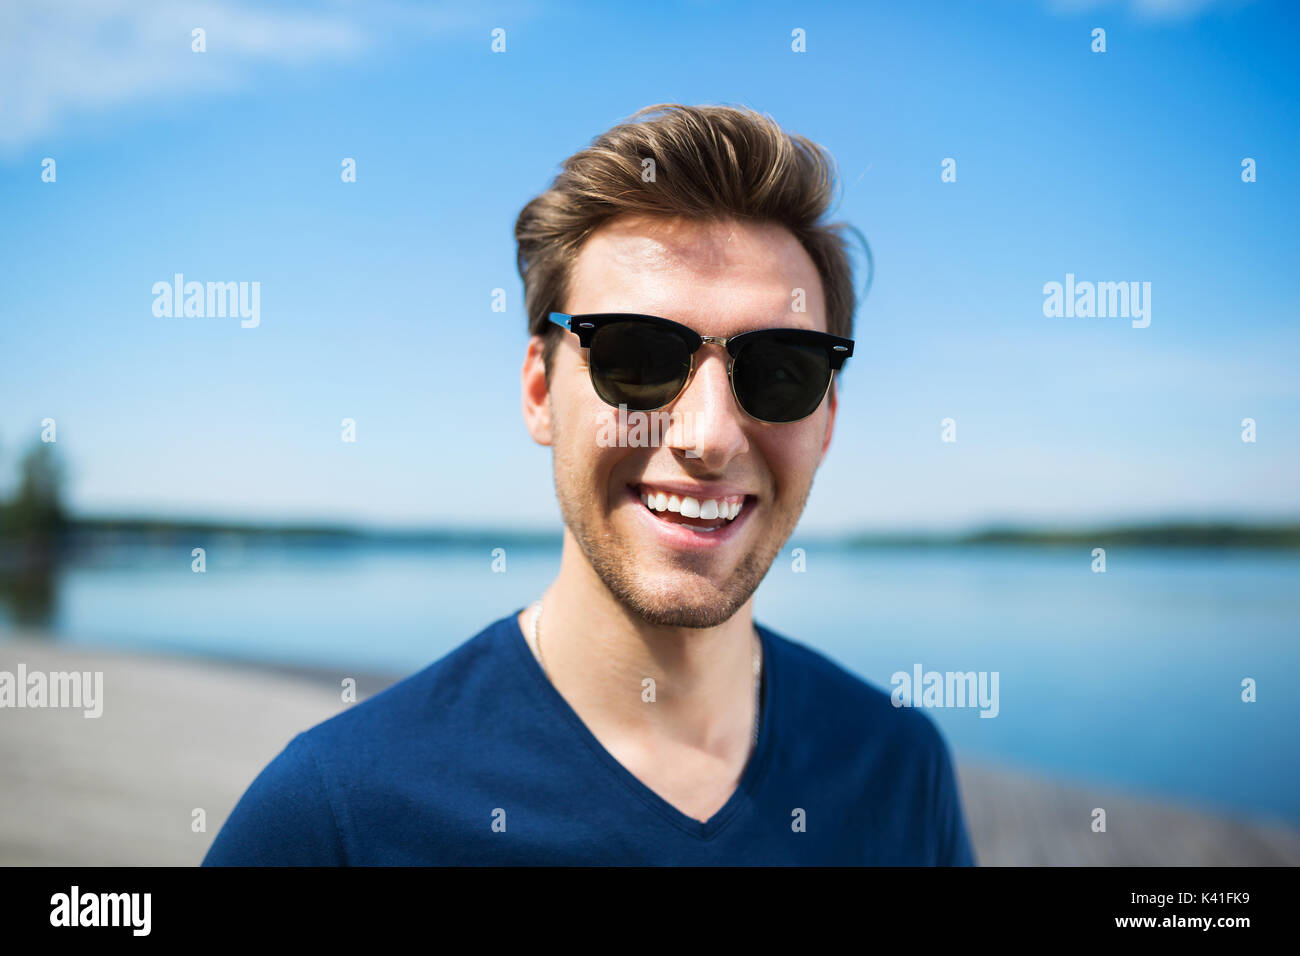 A photo of young, happy man spending his free time at the lake. - Stock Image